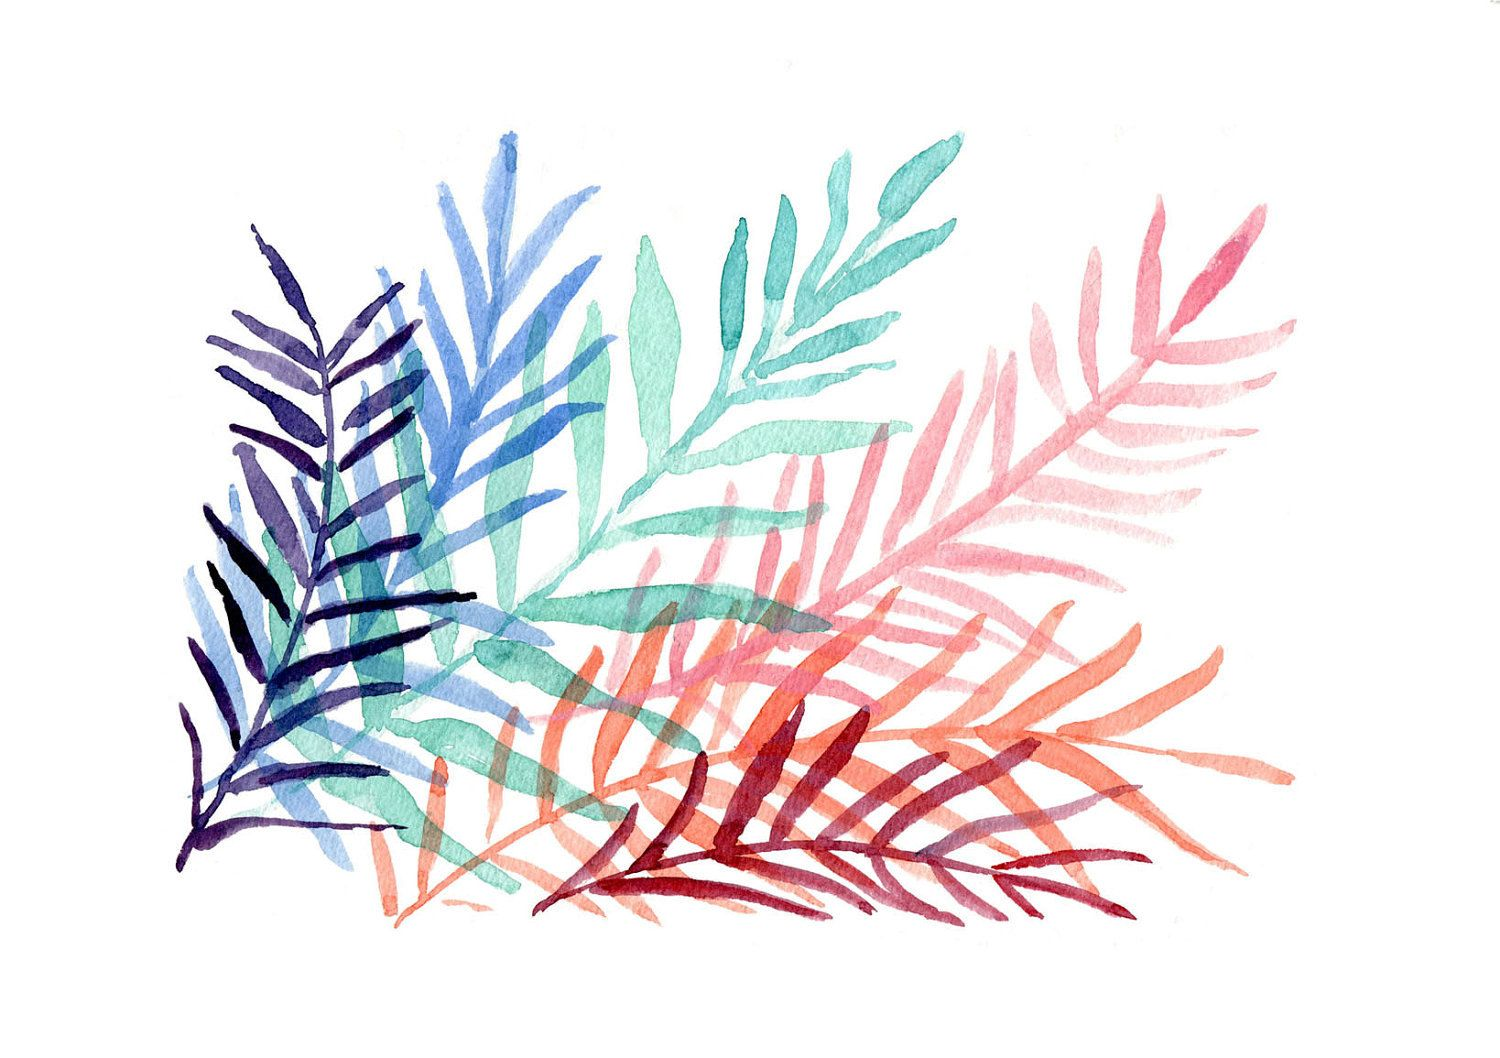 This would be perfect to make my living room and kitchen color palettes flow!  watercolor painting of ferns leaves, turquoise, purple, blue, pink, orange